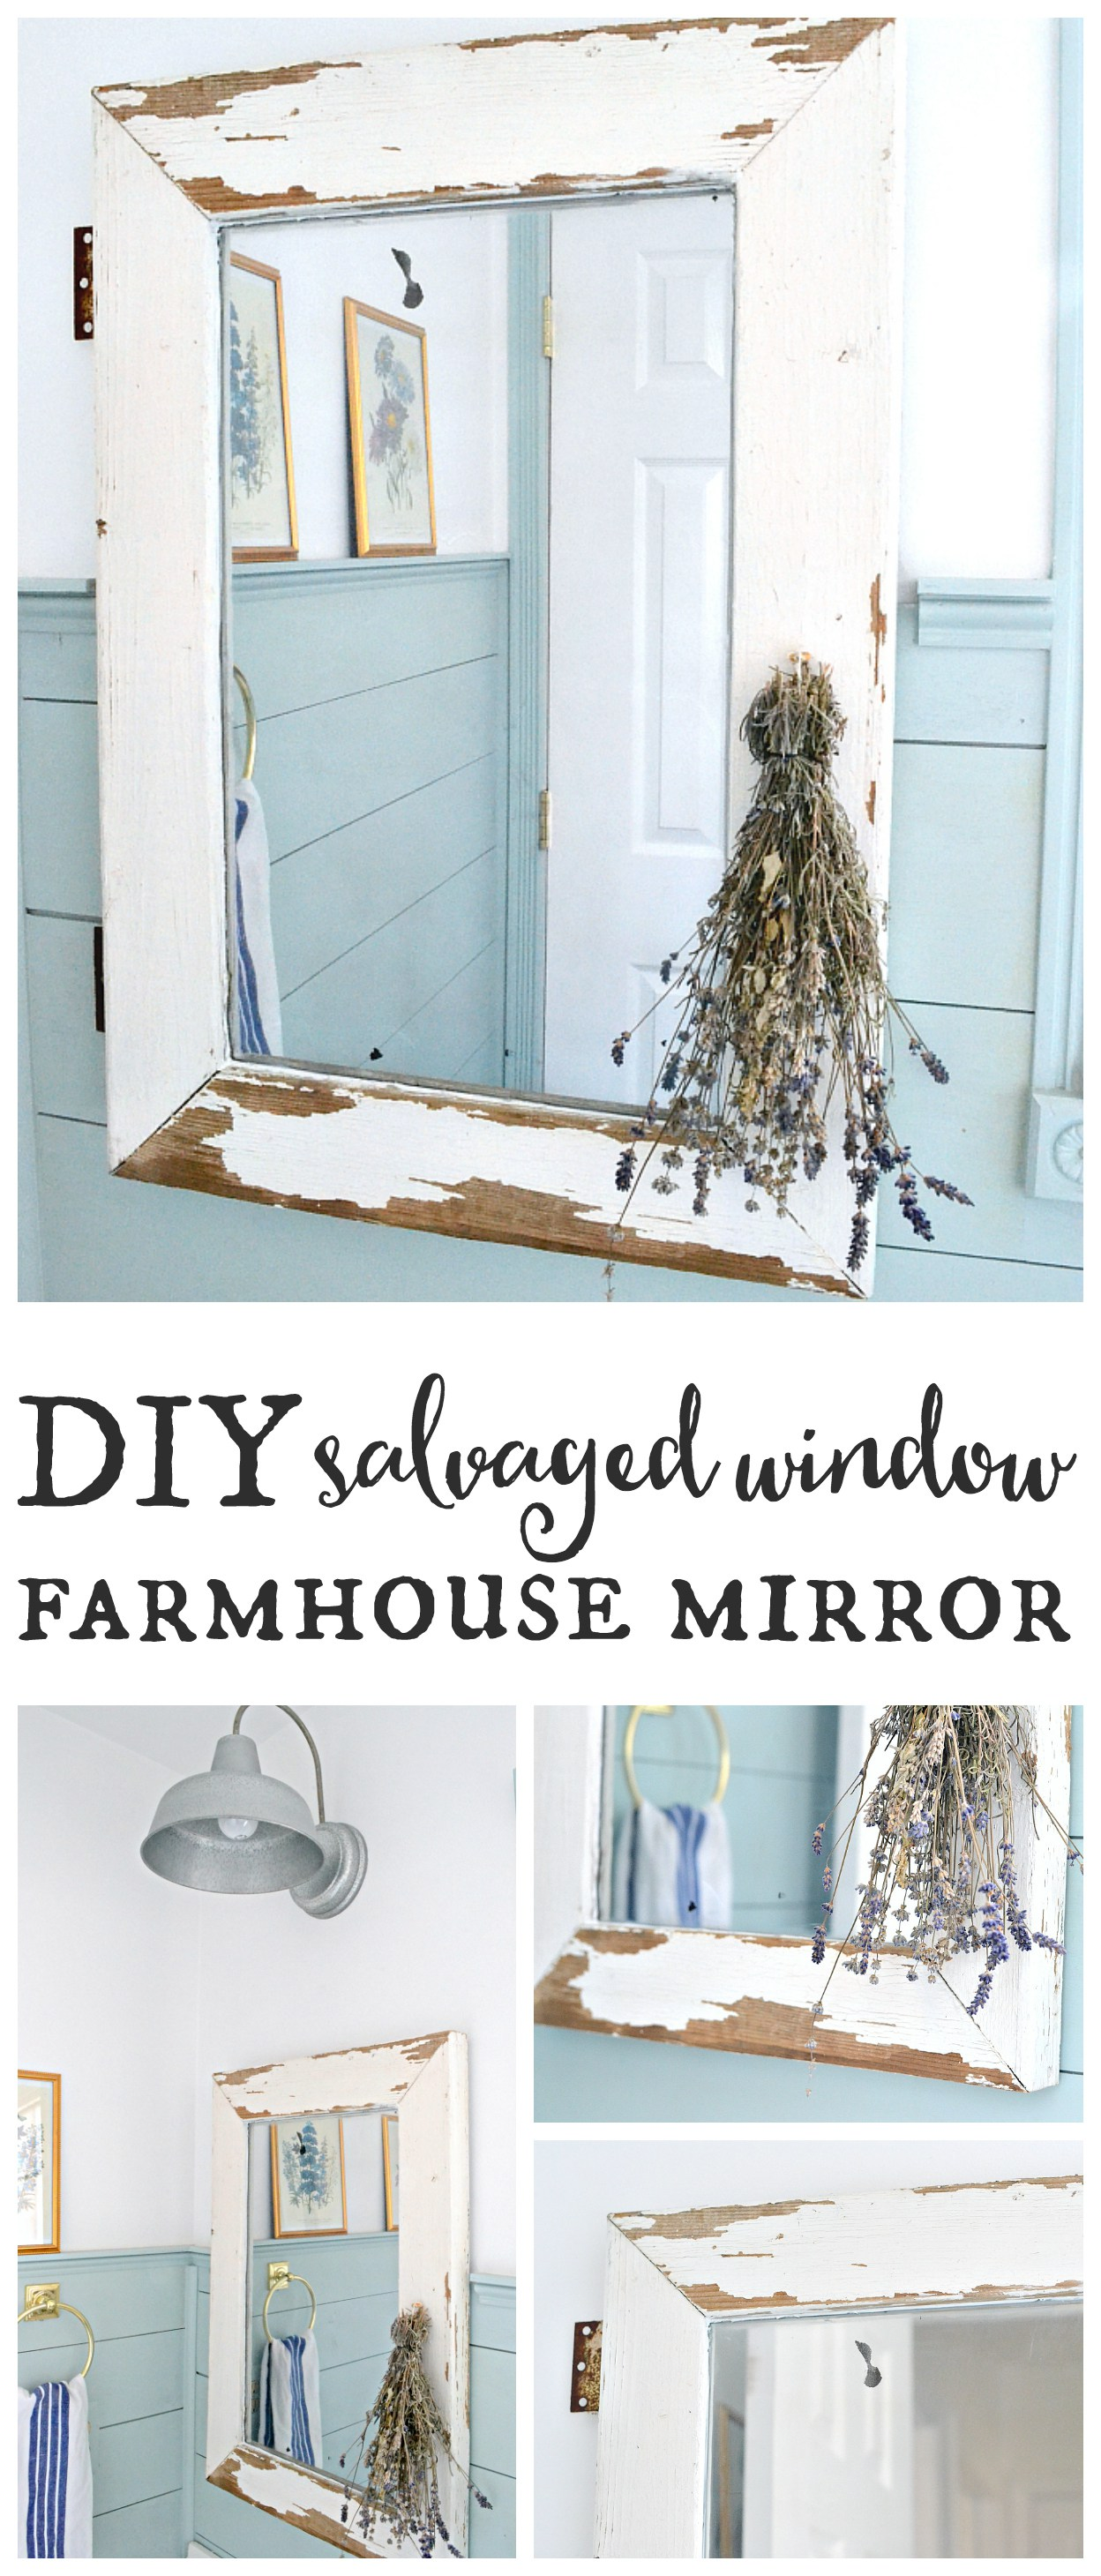 Salvaged-window-farmhouse-mirror.-Turn-a-salvaged-window-into-a-farmhouse-mirror-in-just-a-few-easy-steps-Find-it-on-theweatheredfox.com_